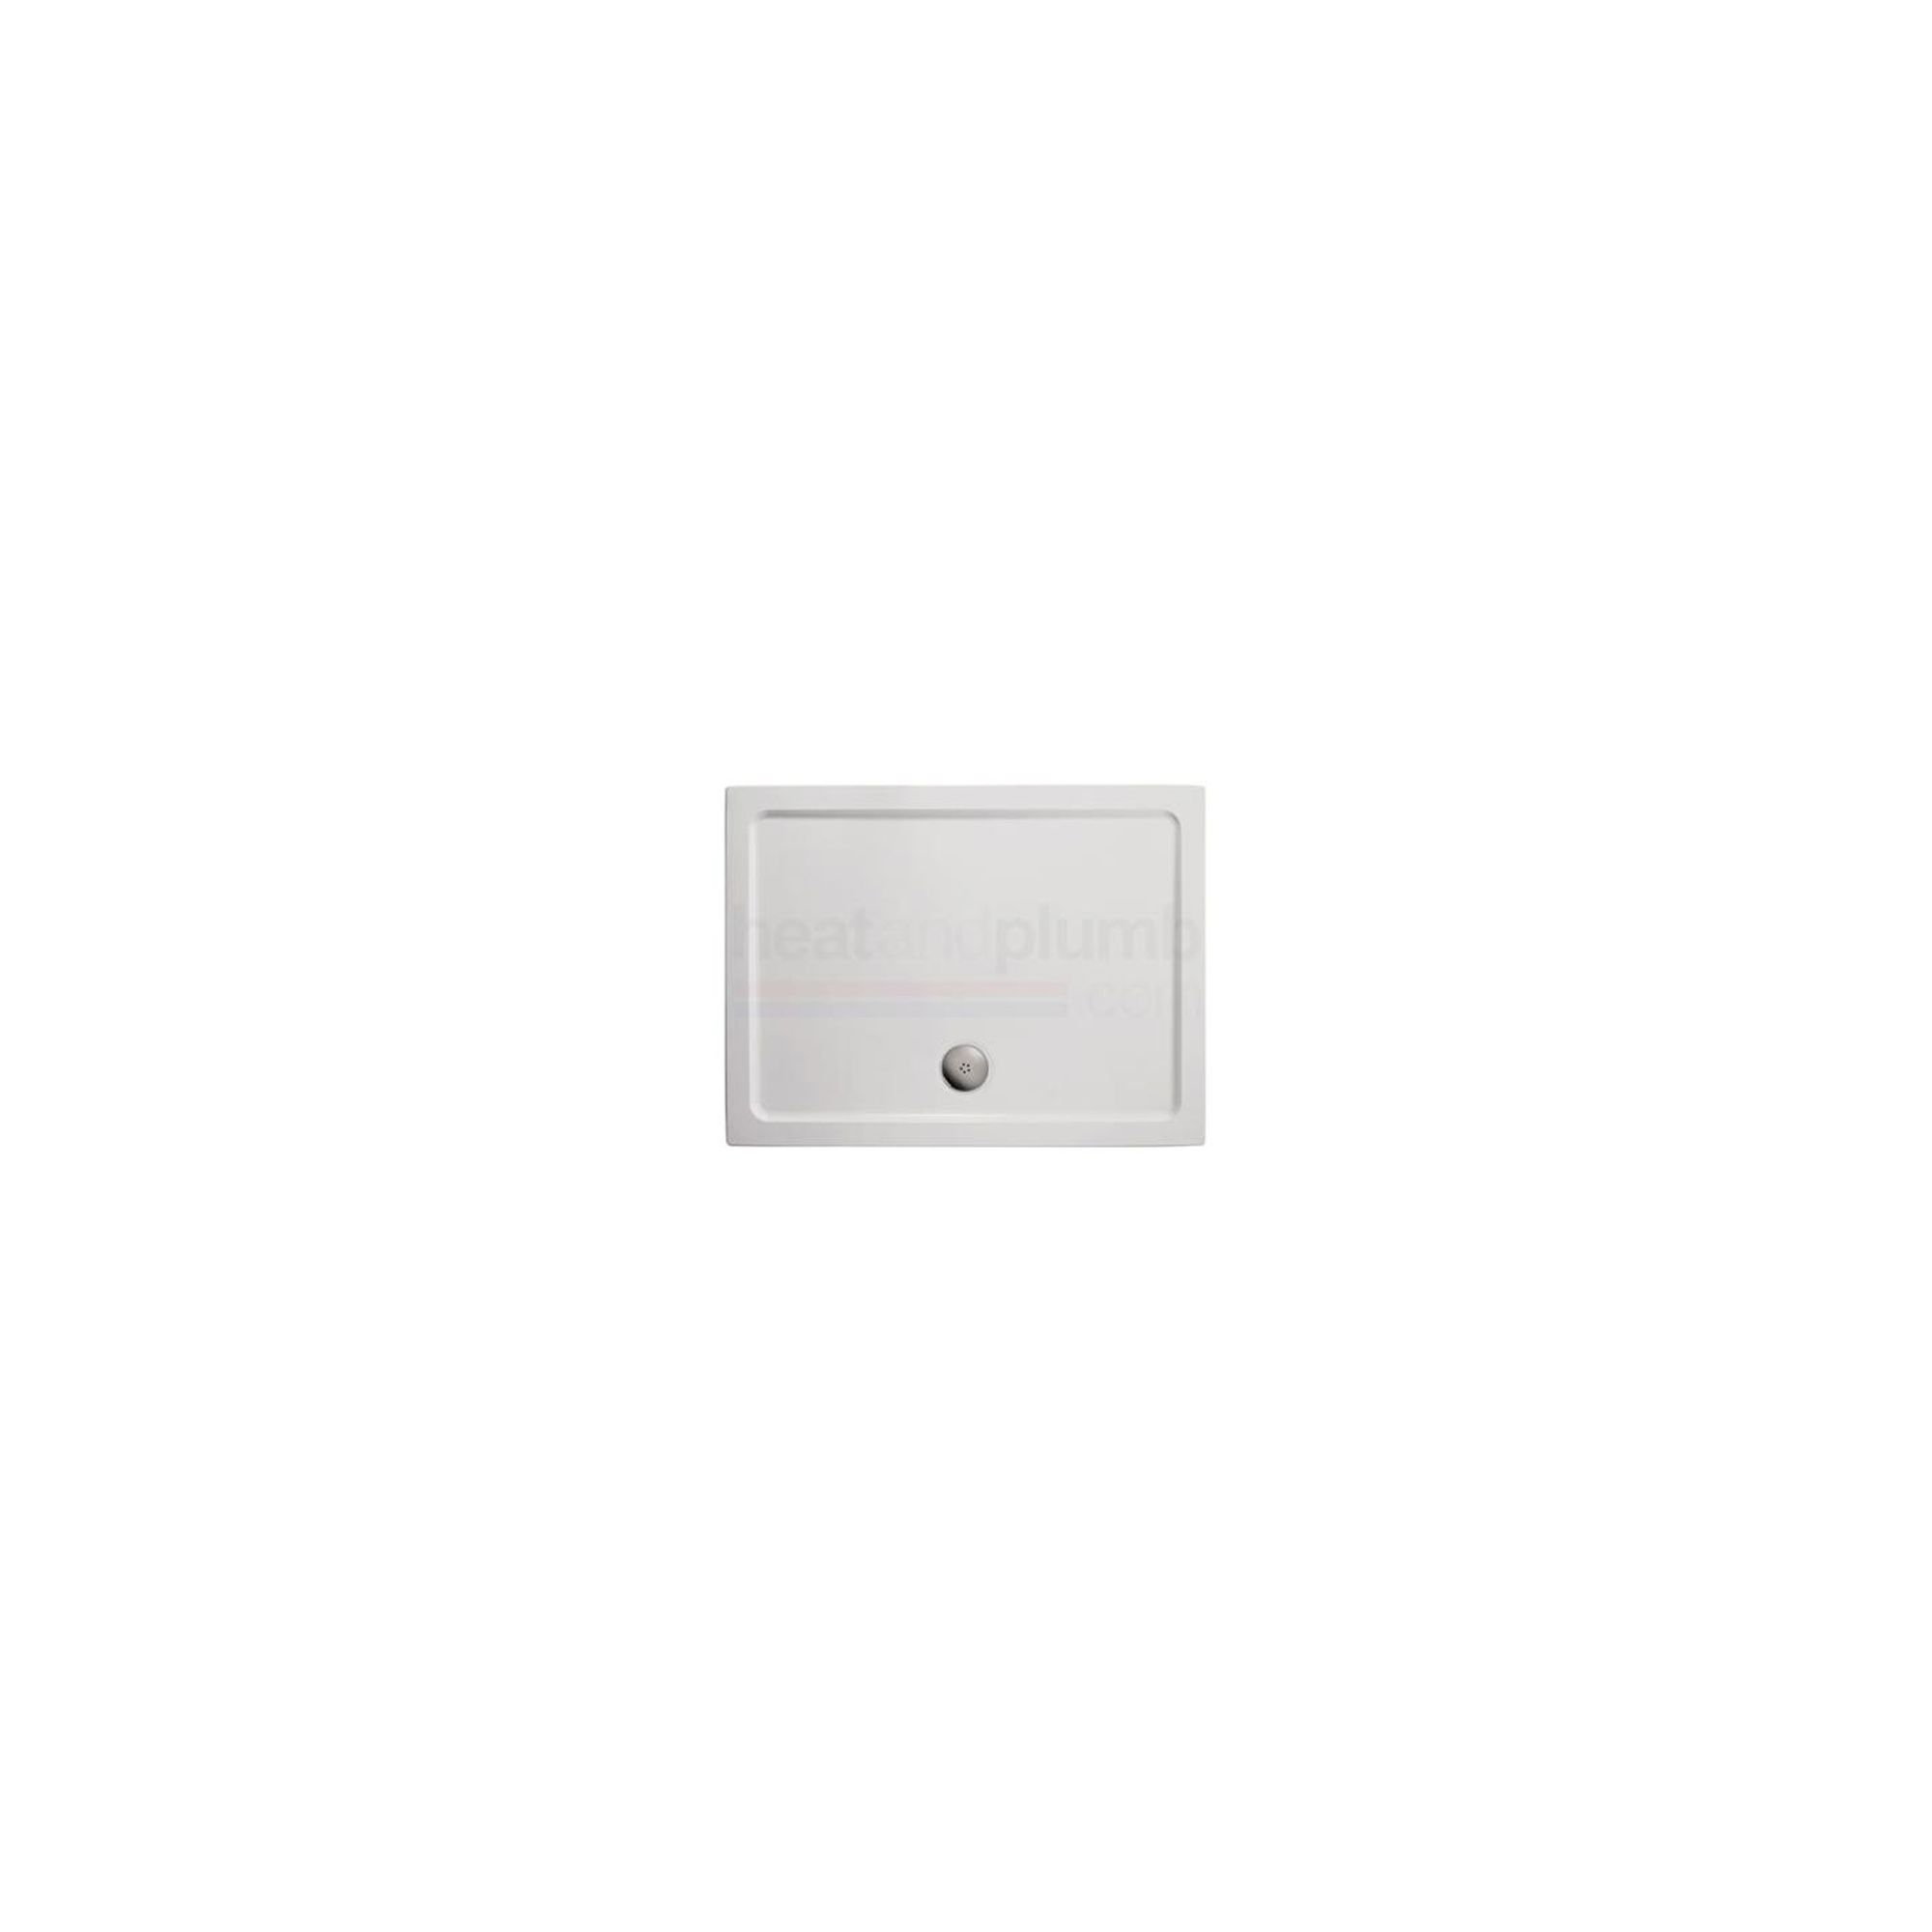 Ideal Standard Idealite Low Profile Rectangular Shower Tray 1700mm x 750mm Flat Top at Tesco Direct